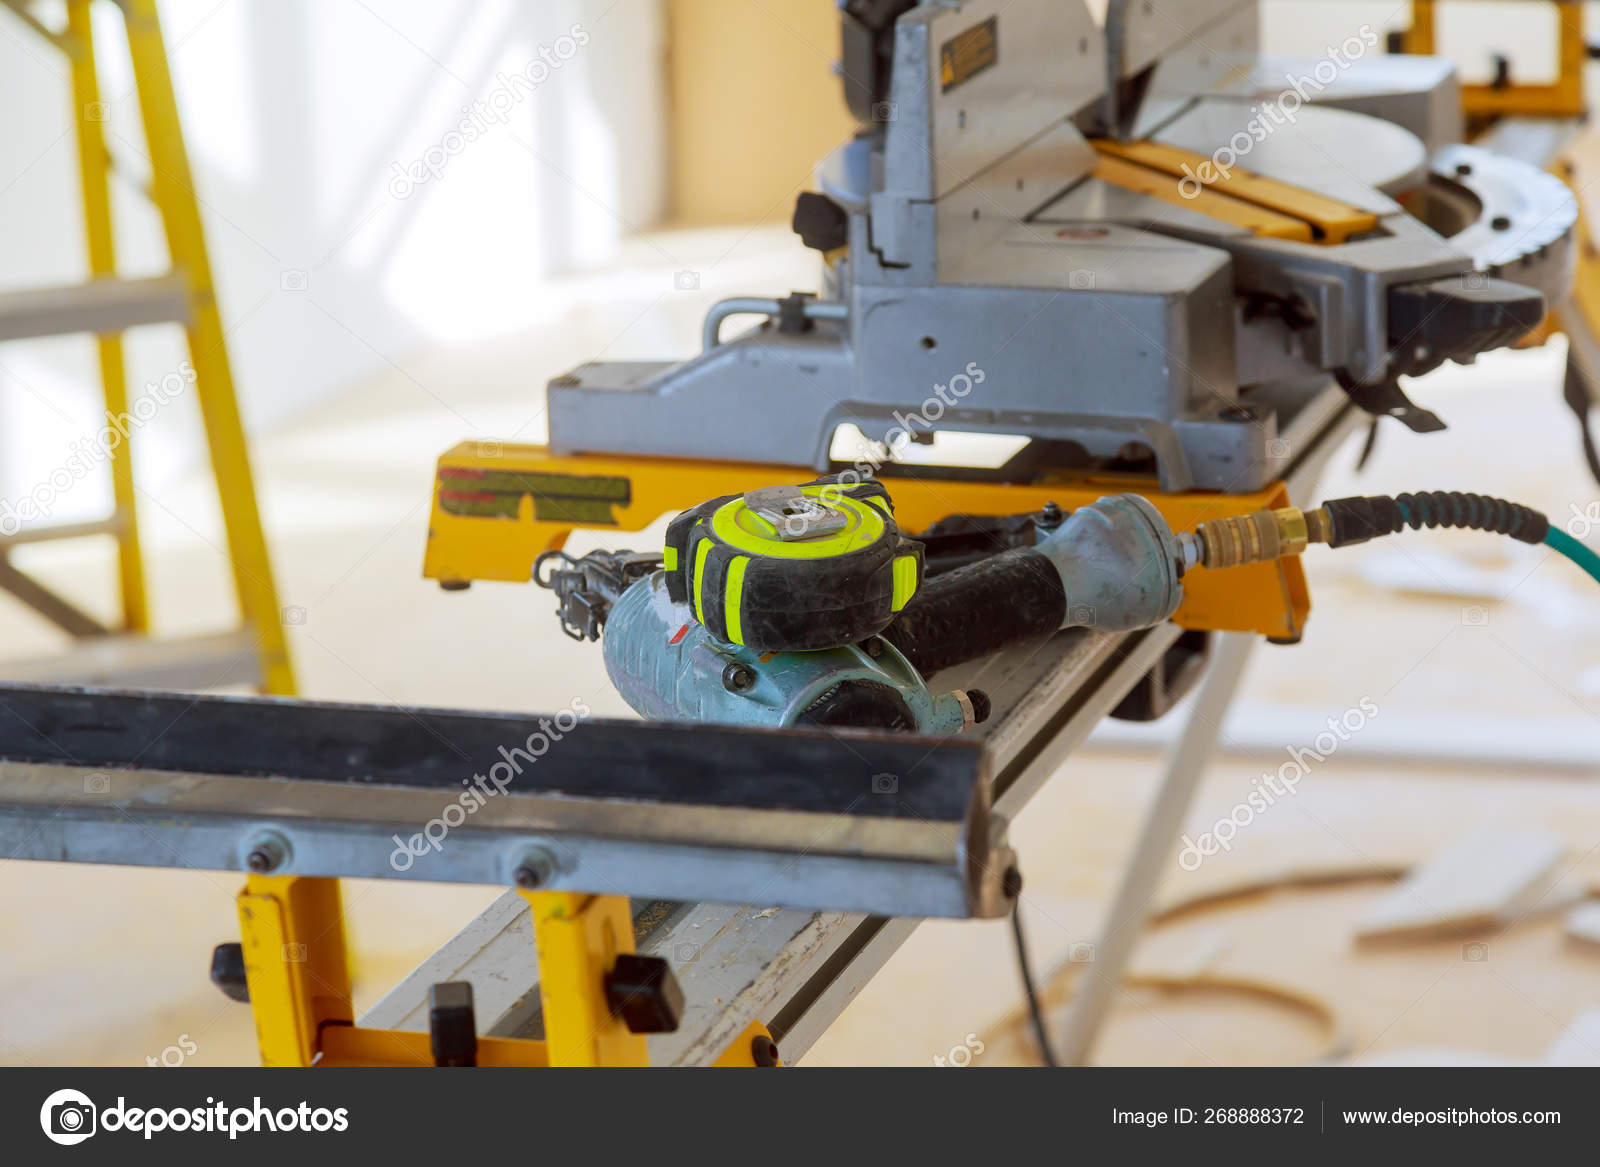 Construction site power tools cutting using circular saw